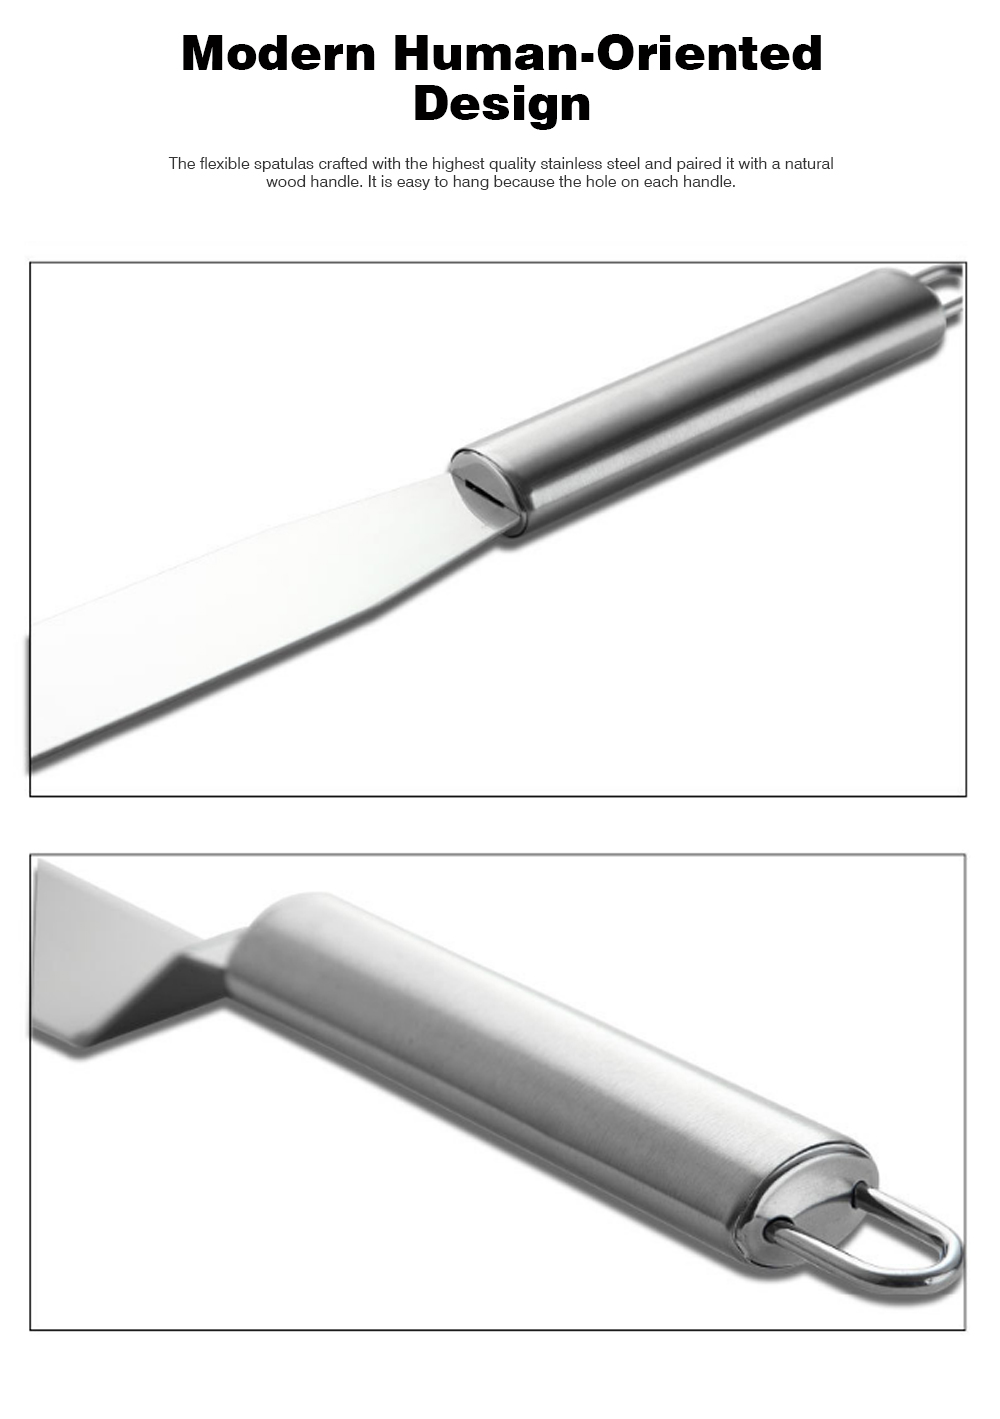 Kiss Knife Cake Tools, Stainless Steel Spatula Cake Cream Spatula Scraper, 8 Inch and 10 Inch 7